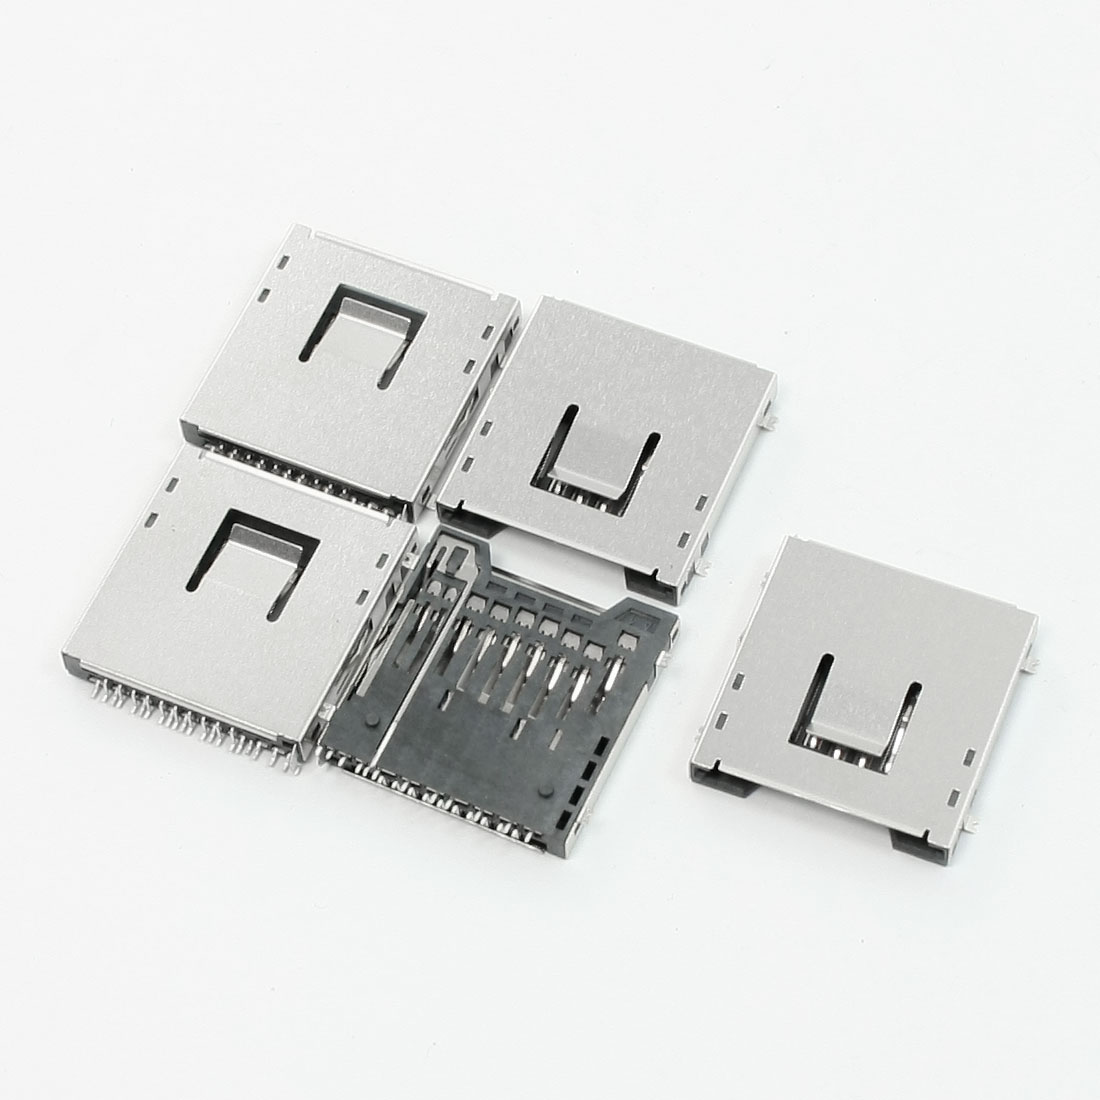 PCB Surface Mount Quick Flip SD Card Sockets 2.5mm Thick 5 Pcs